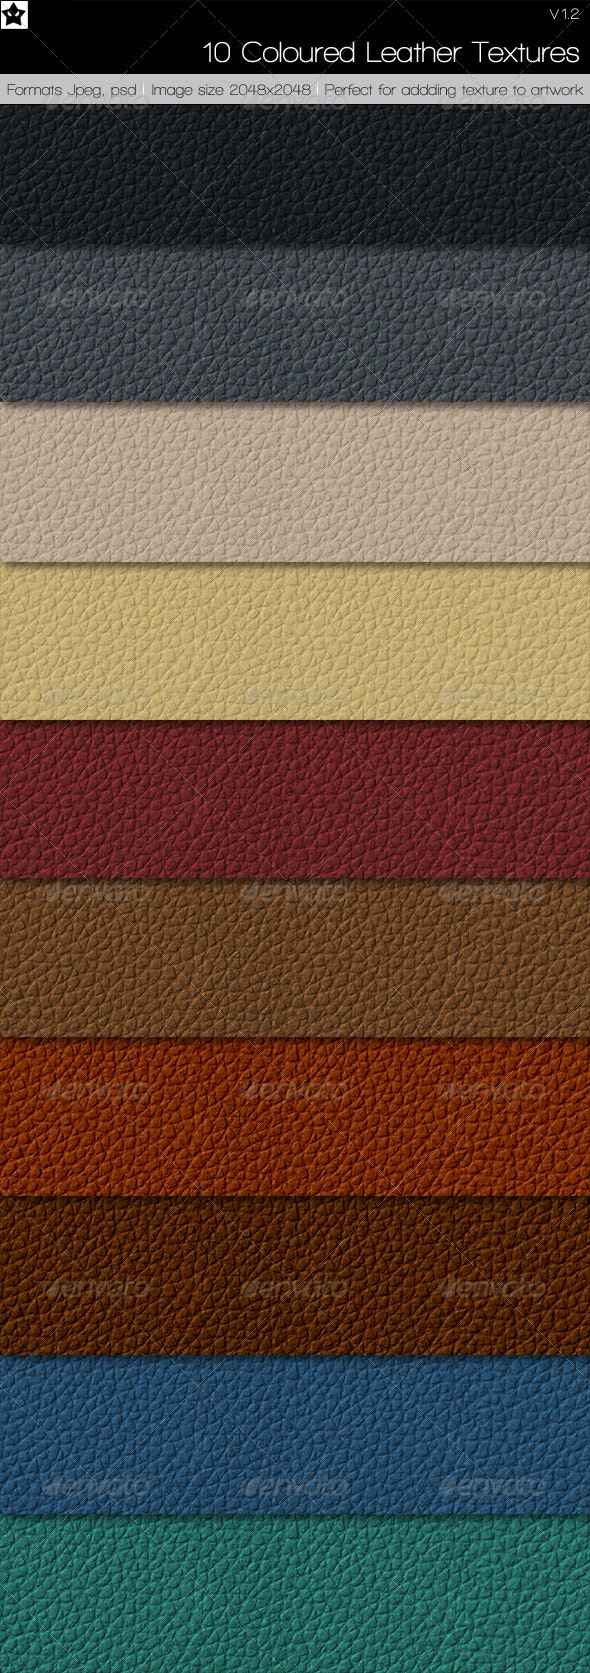 10 Colored Leather Textures - Fabric Textures